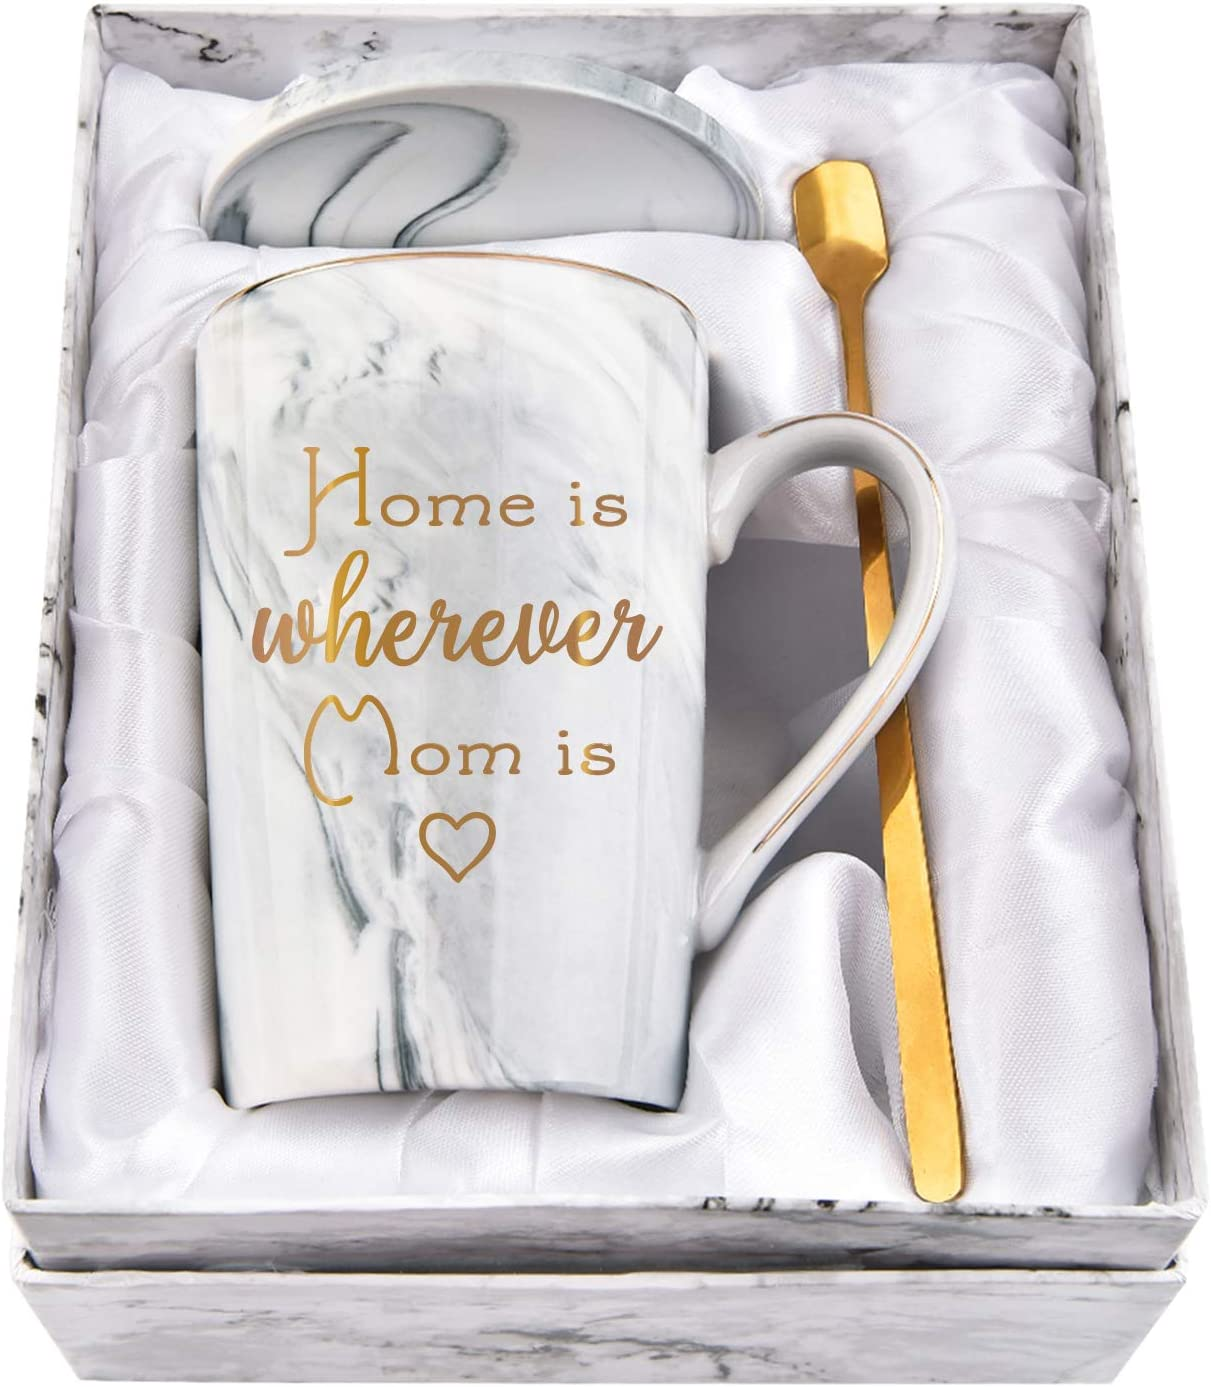 Funny Coffee Mugs for Mom Mothers Day Gifts for Mom from Daughter Son Home Is Wherever Mom Is Mug Birthday Gifts for Mom Women Mom Marble Coffee Cups 14 Oz Gray with Gift Box